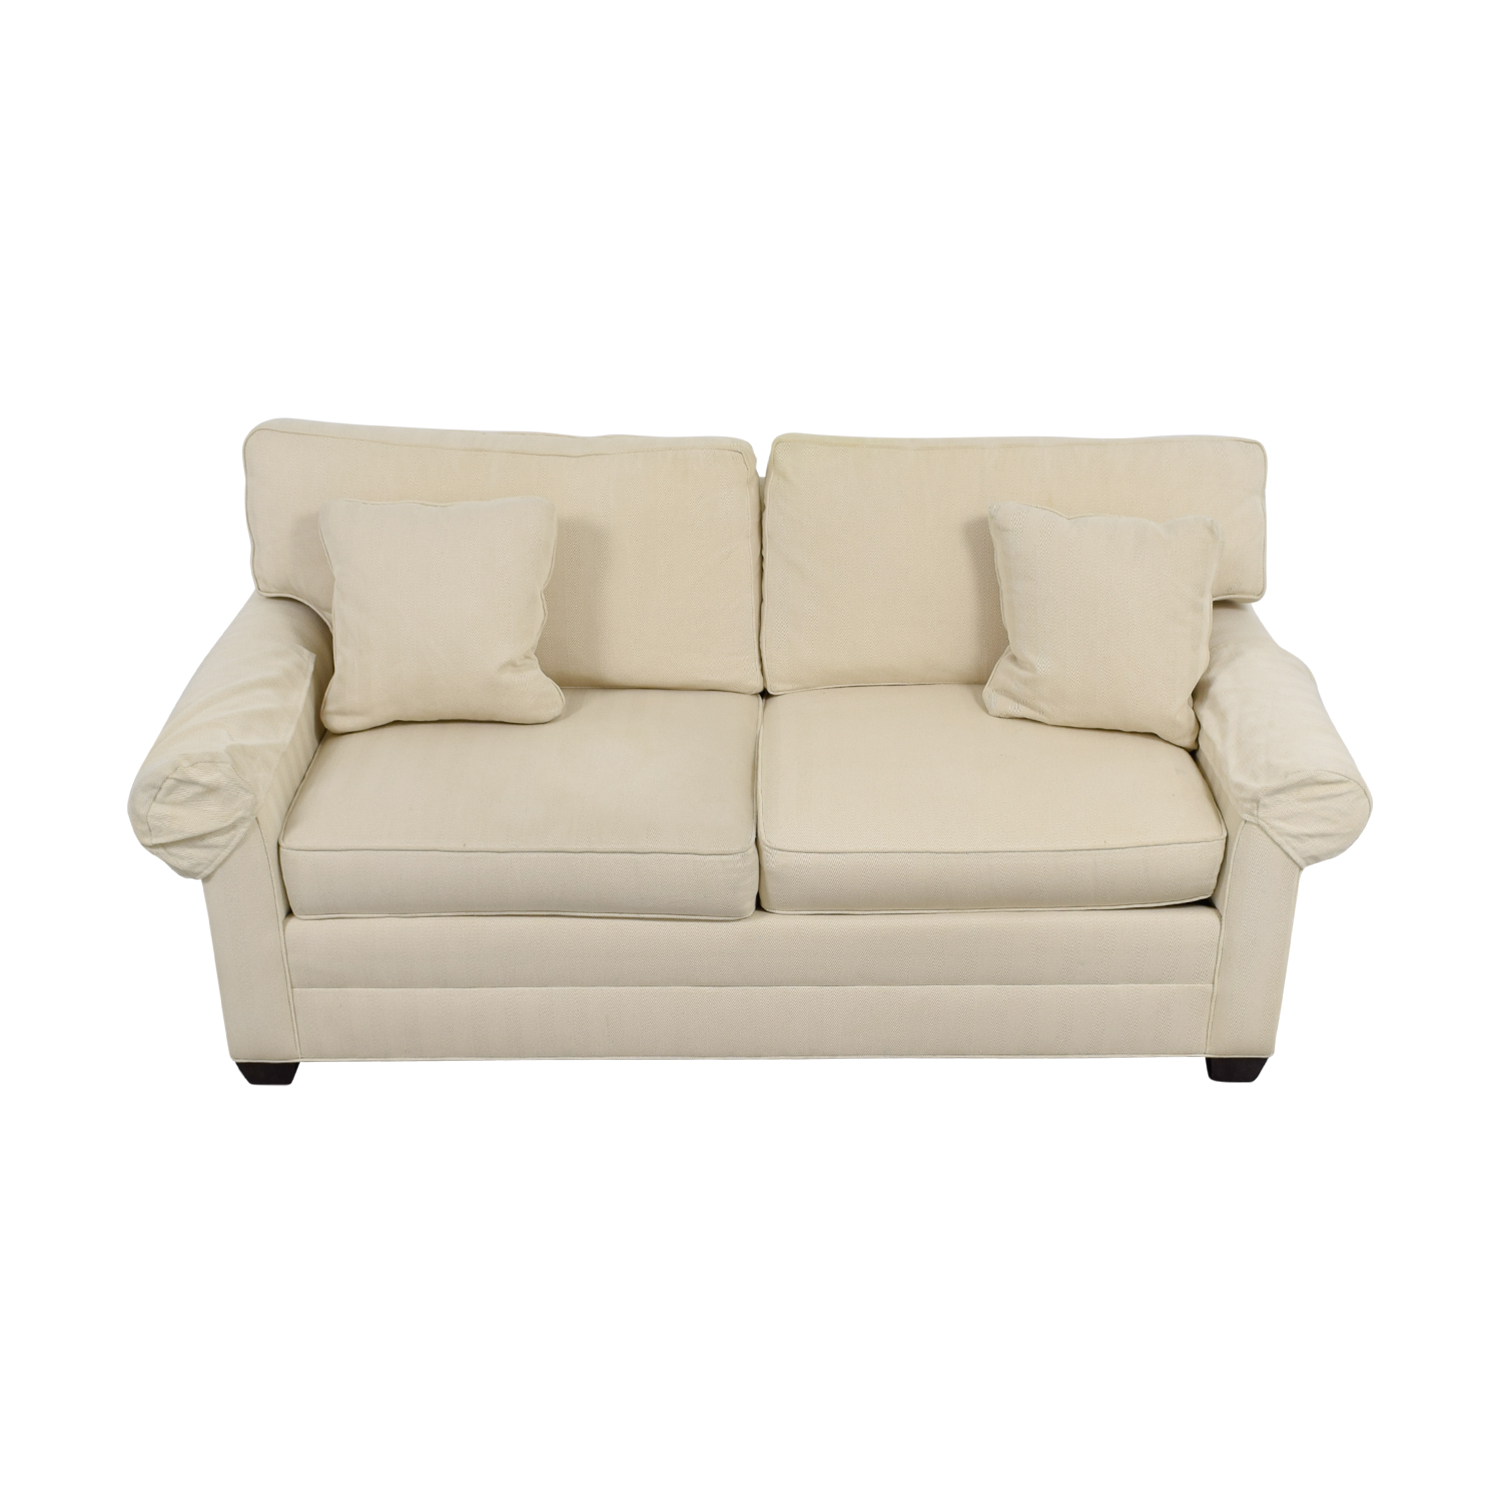 Ethan Allen Ethan Allen Bennett Sofa on sale